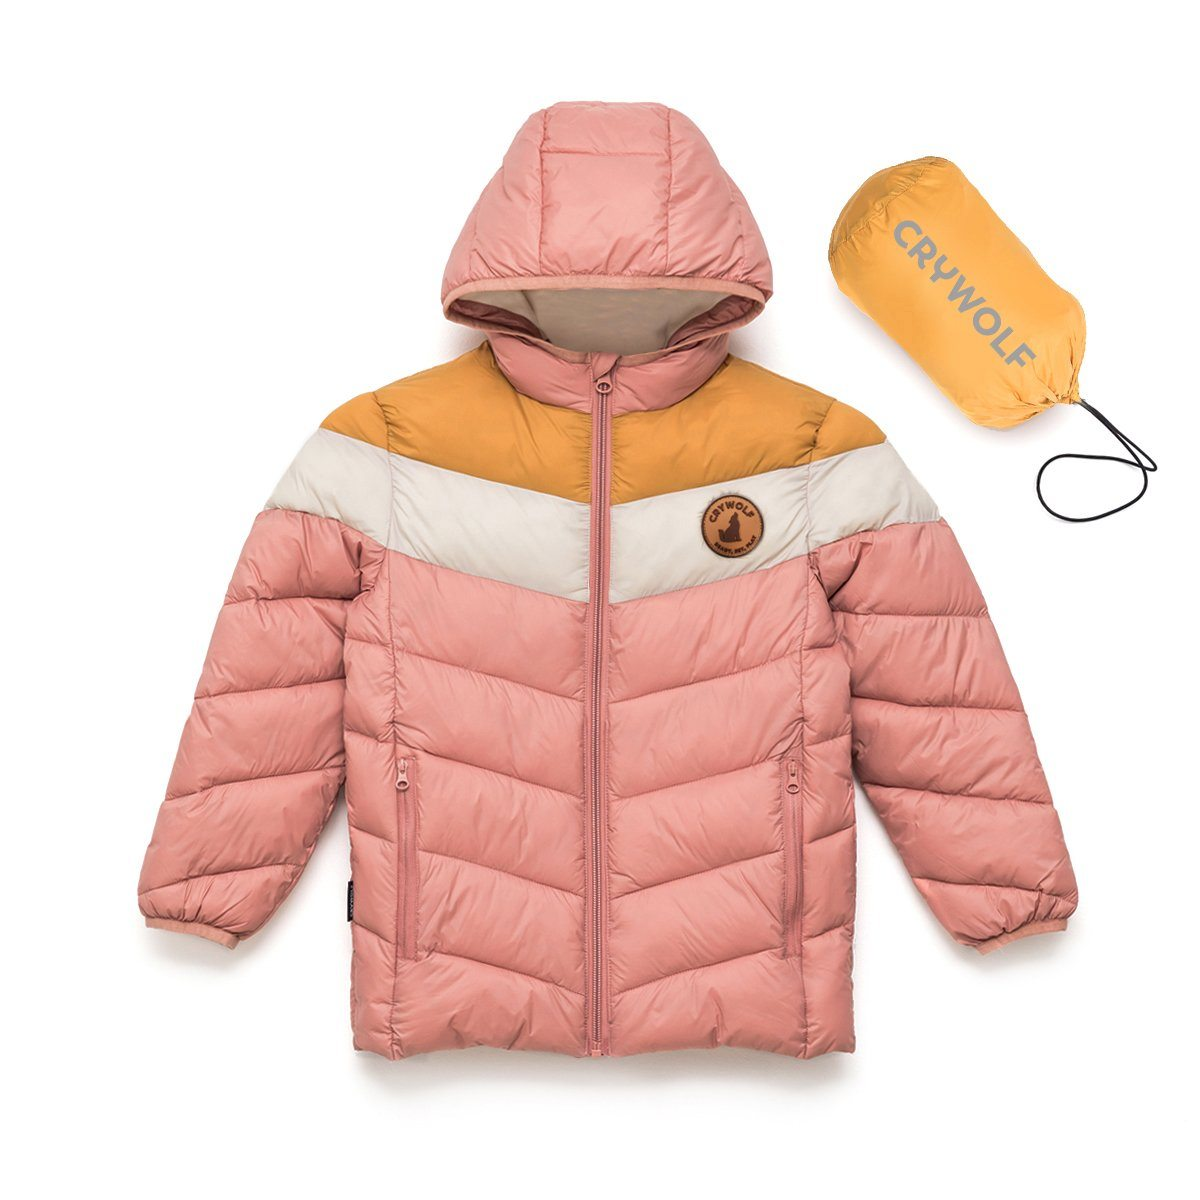 Eco Puffer Jacket (Dusty Rose)